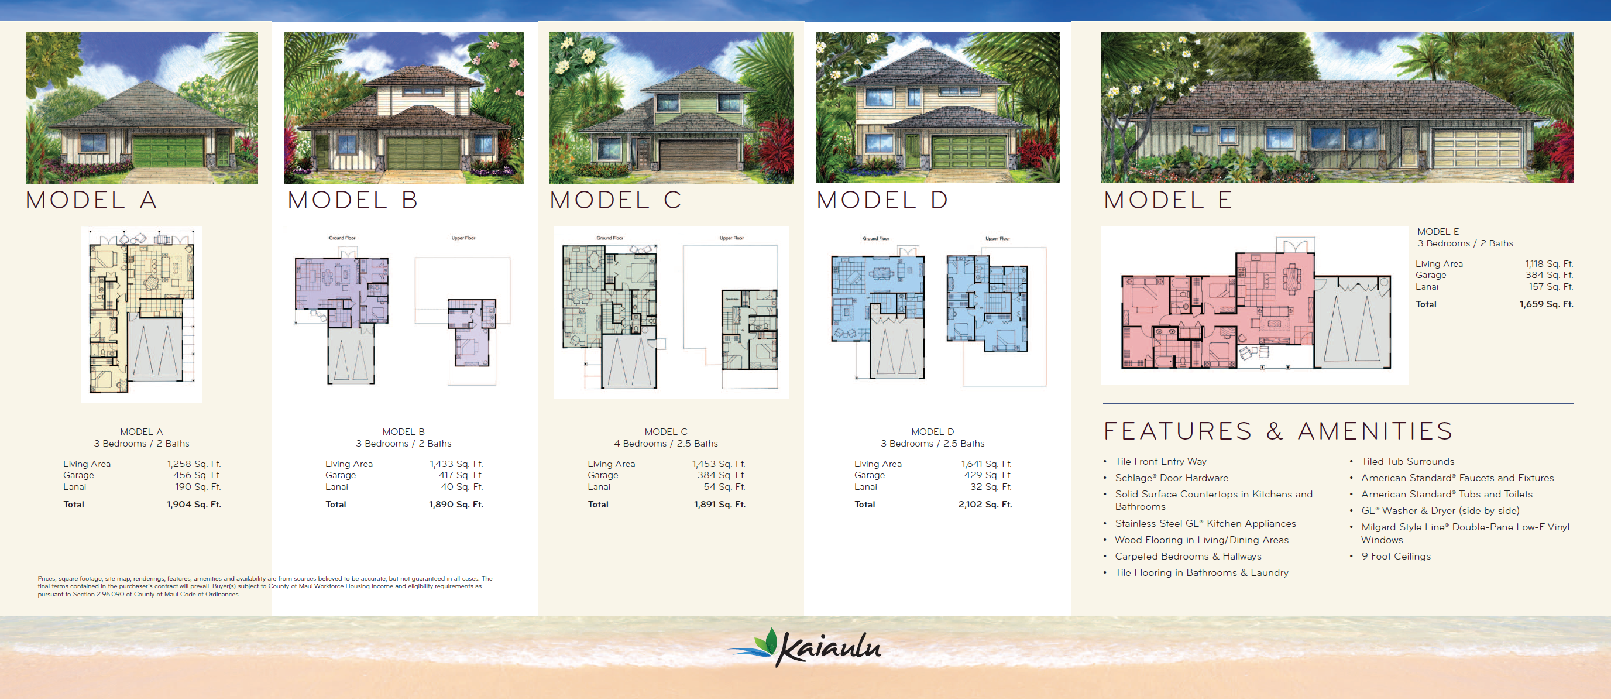 Kaiaulu Maui Brochure Floor Plans